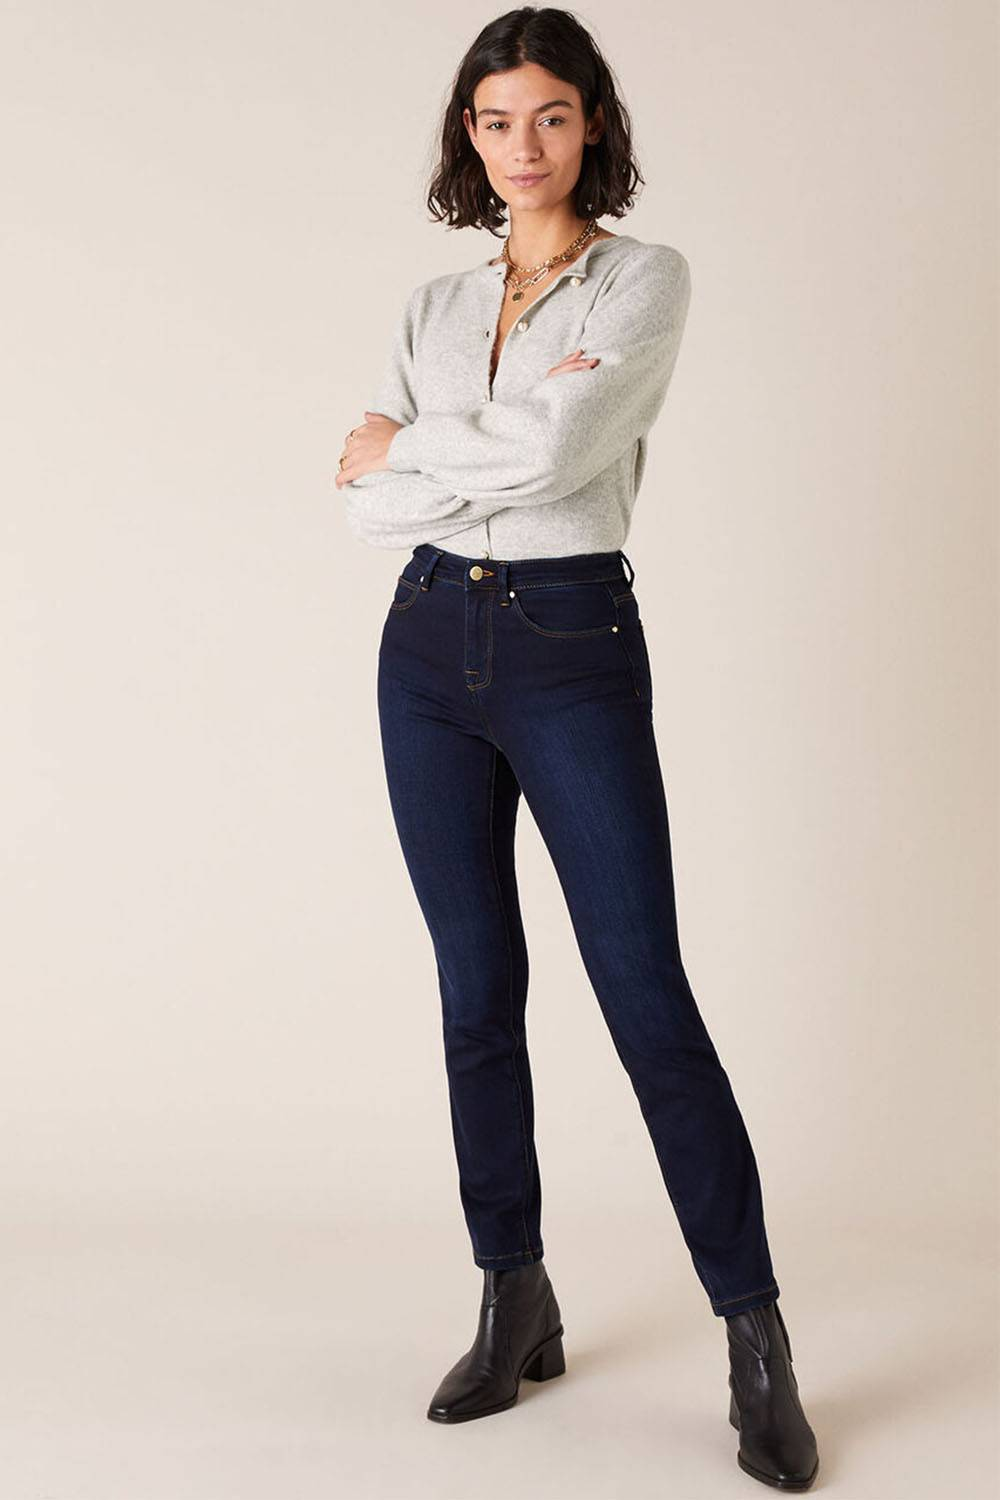 monsoon sustainable affordable lyocell jeans